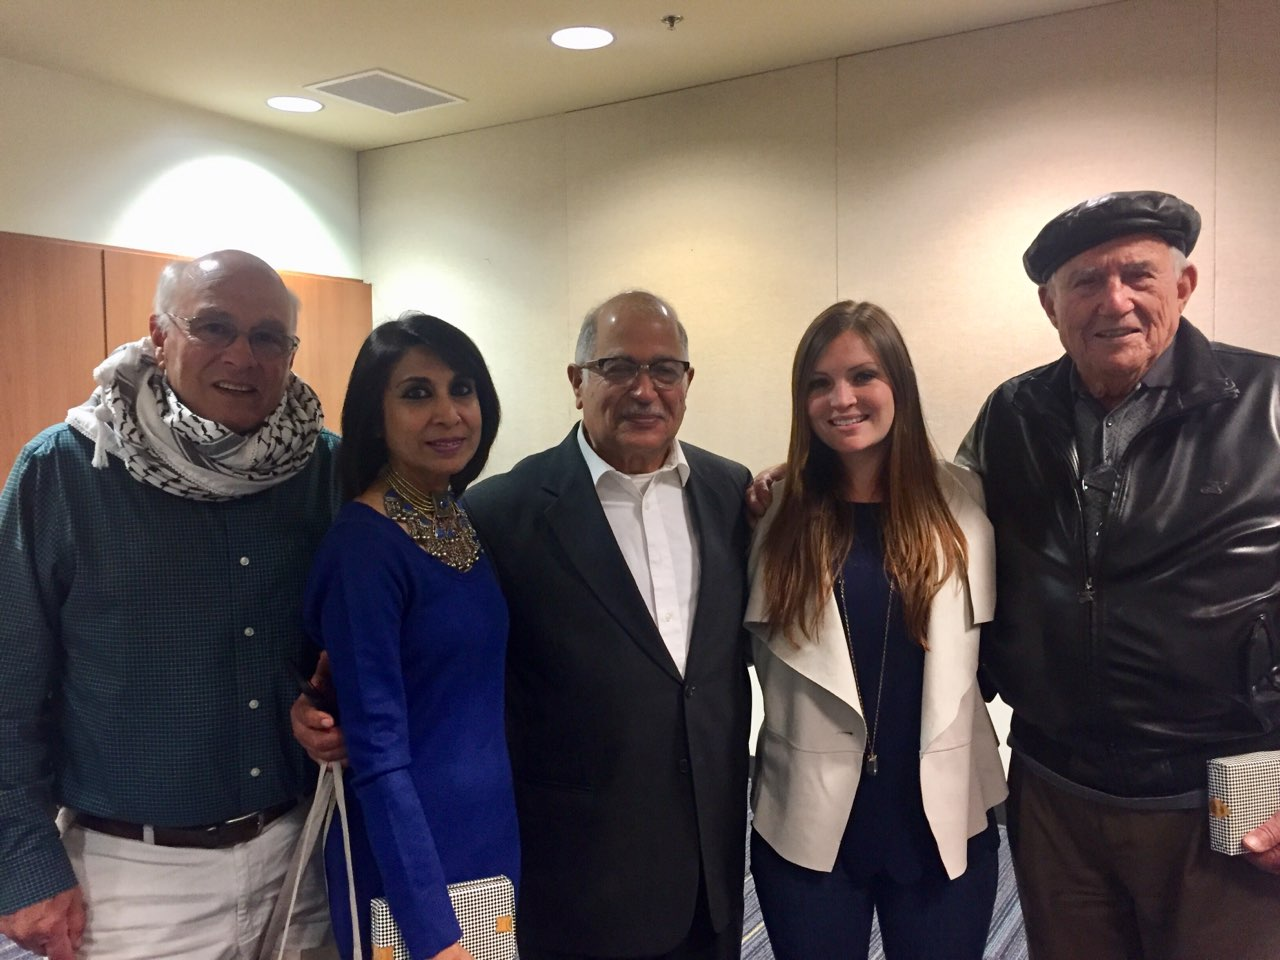 From left: MEHC speakers Douglas Bailey, Roohi Vora, Sami A. Ibrahim, Natasha Ibrahim and Eusataquio Navarro-Cortez pose for a photo at SJCC on April 11.